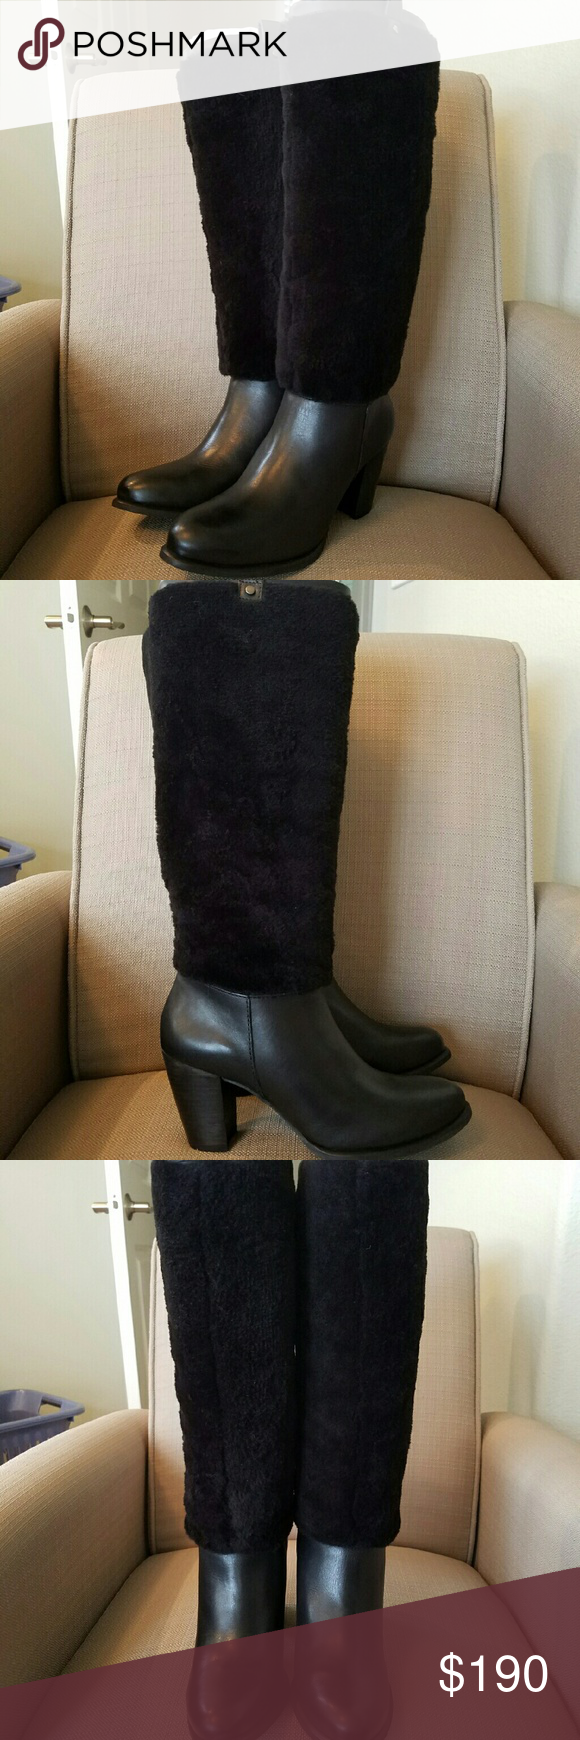 473a35e489 UGG Ava Exposed Fur Boot Women's With its textural mix of plush ...